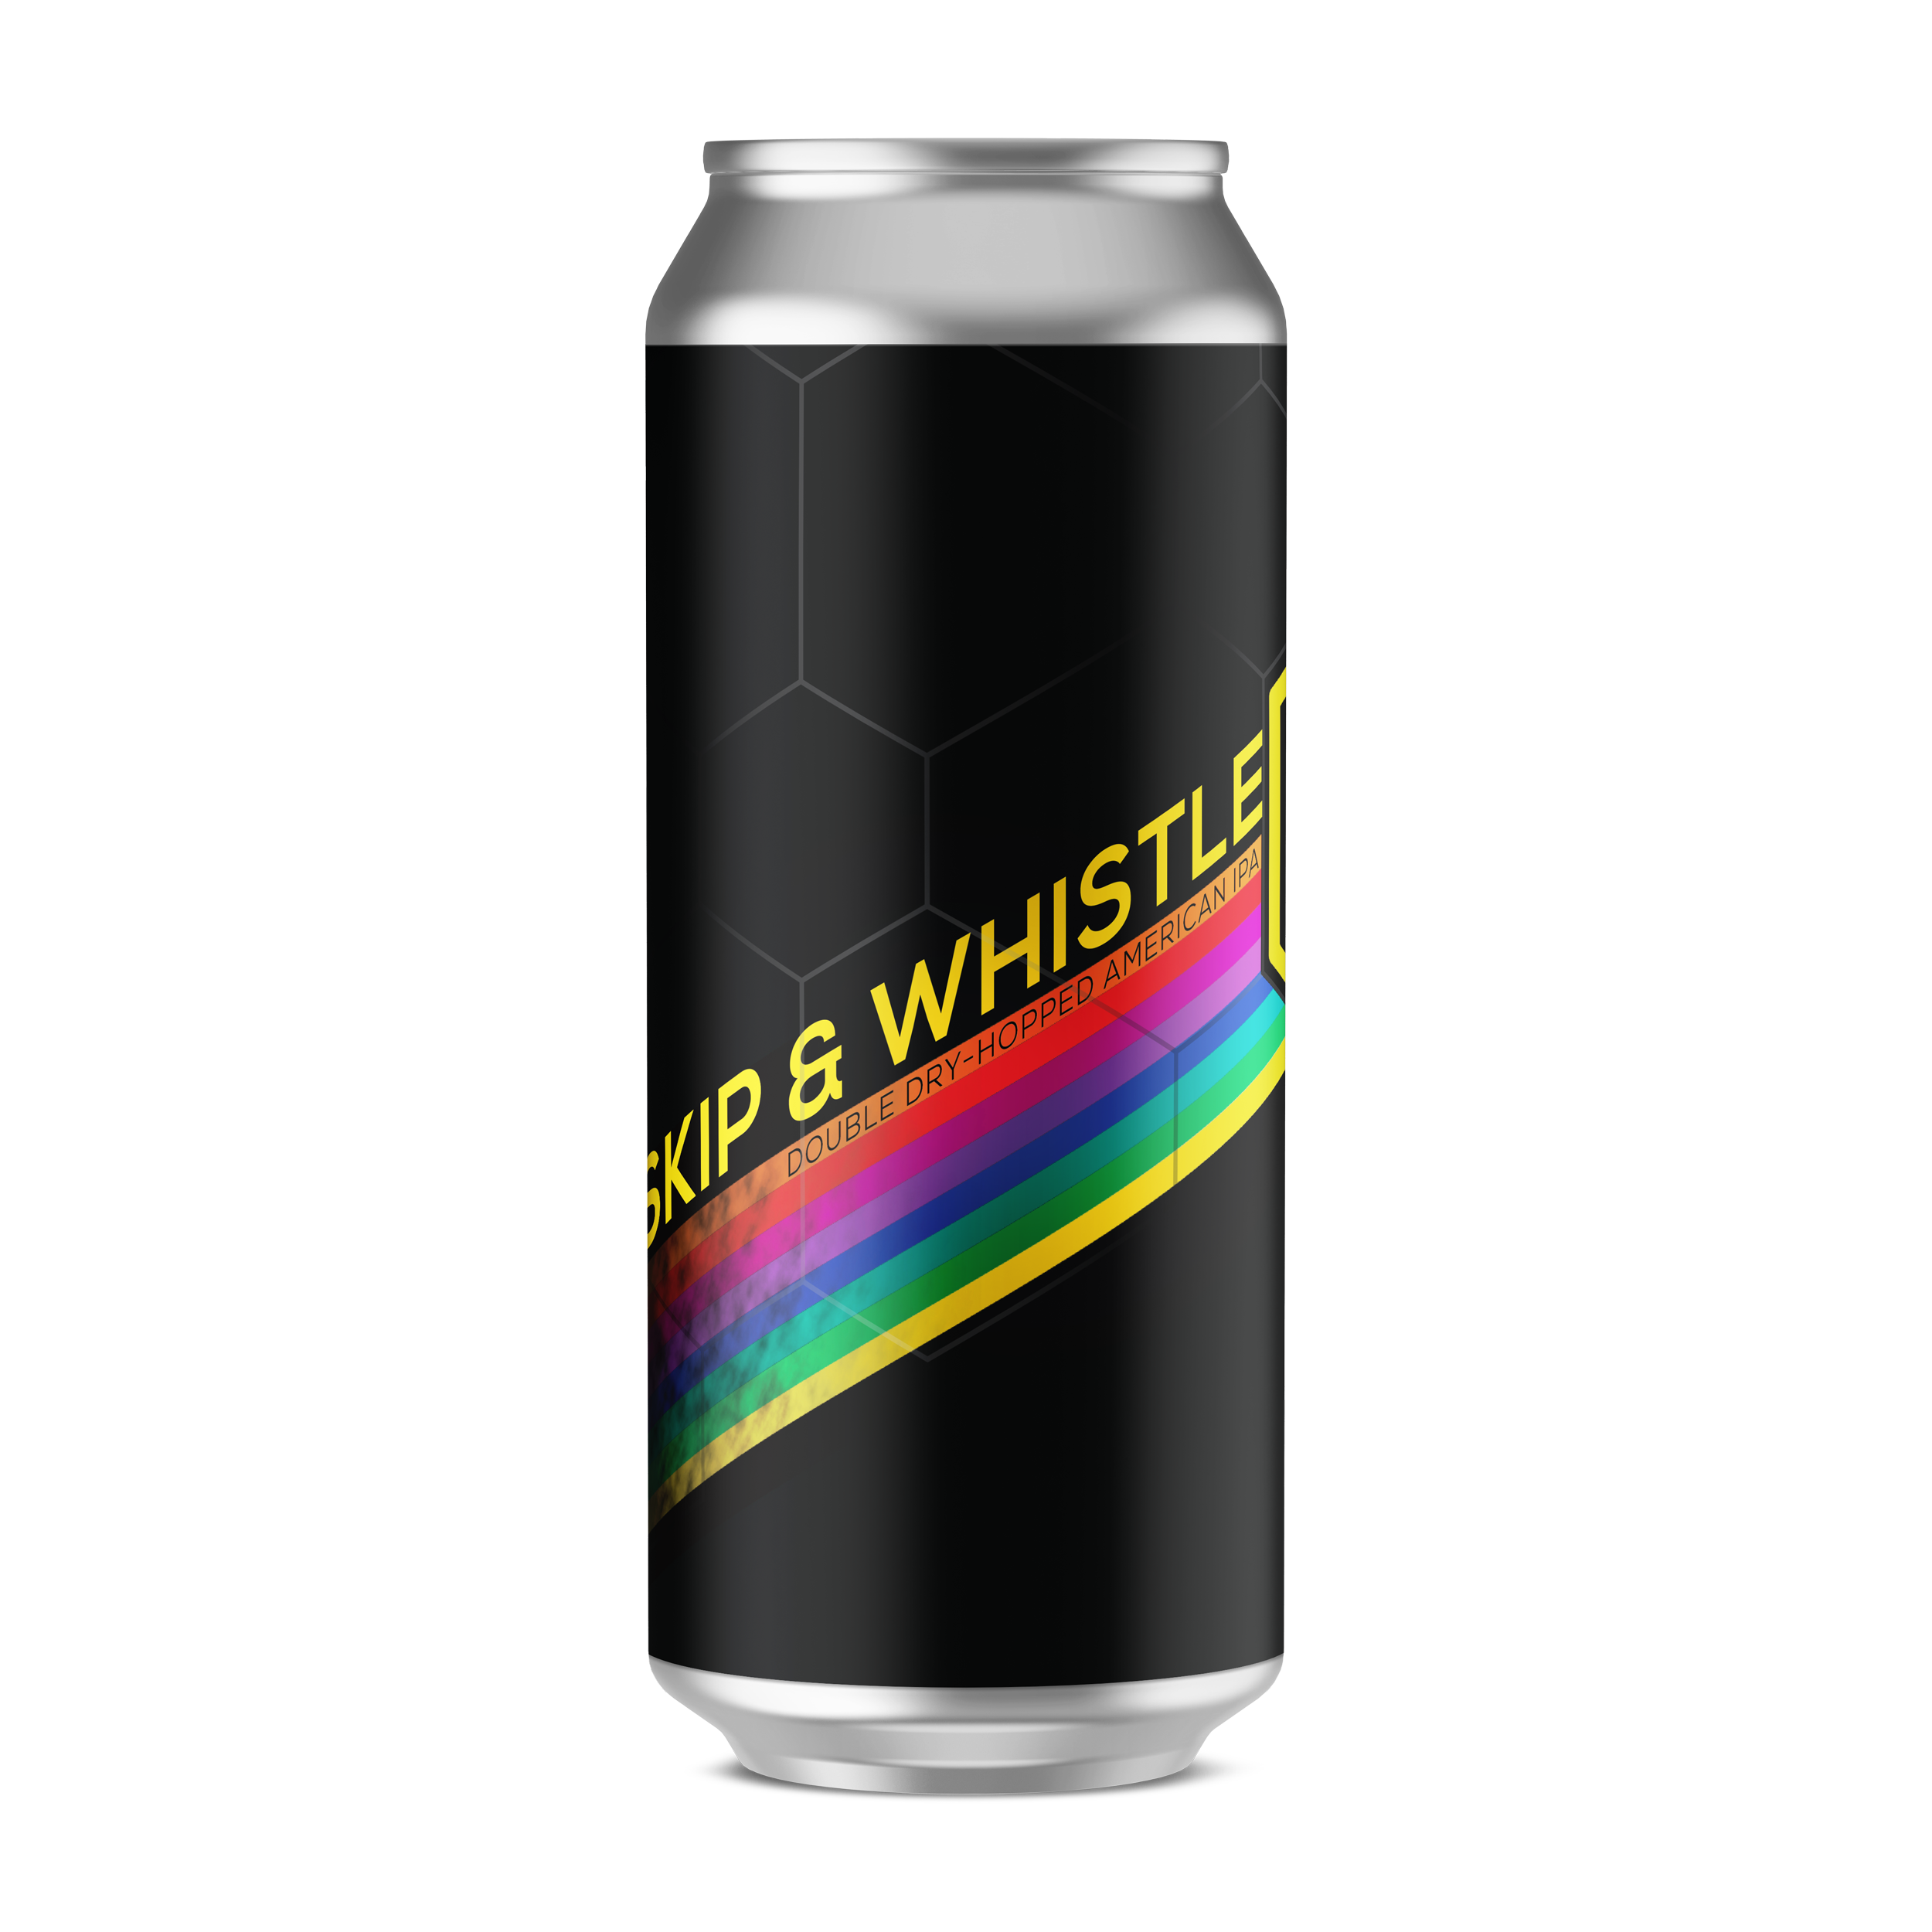 Shared-Can-16oz-SkipWhistle.png